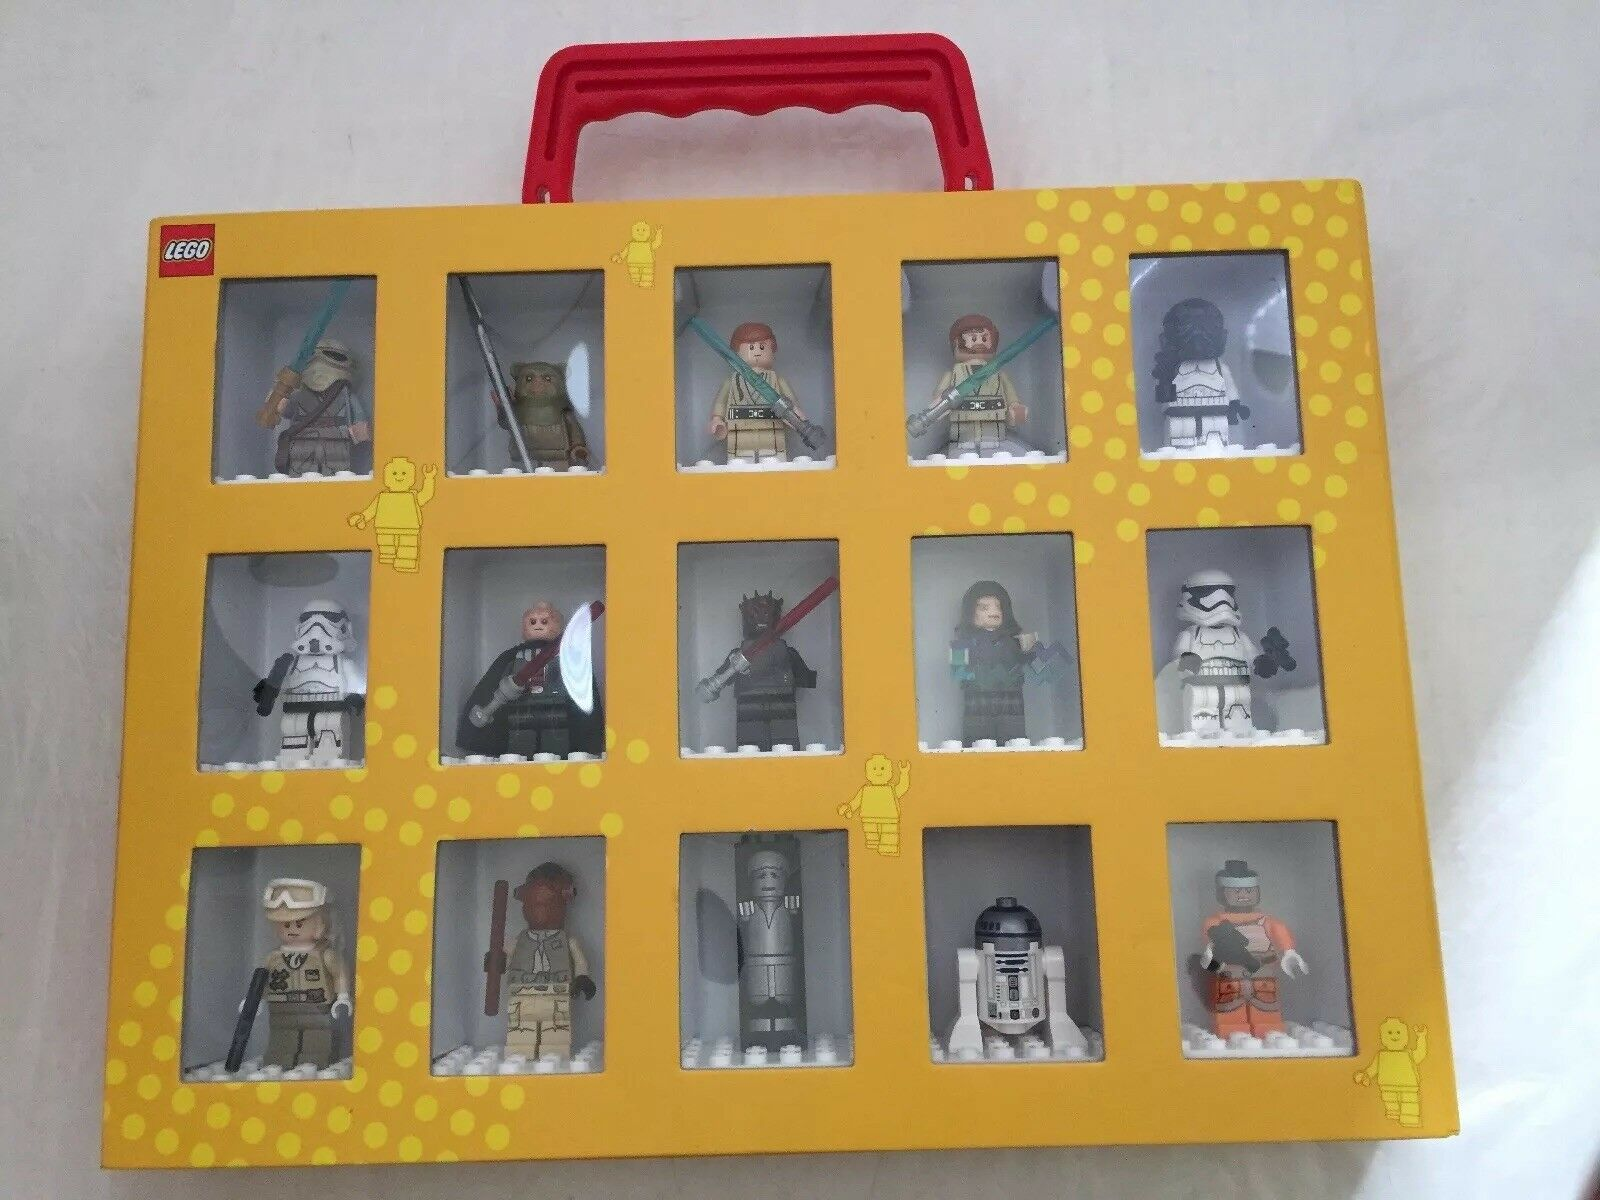 Lego Star Wars Minifigures w/ Collector's Box Carry Case Gelb Display Storage